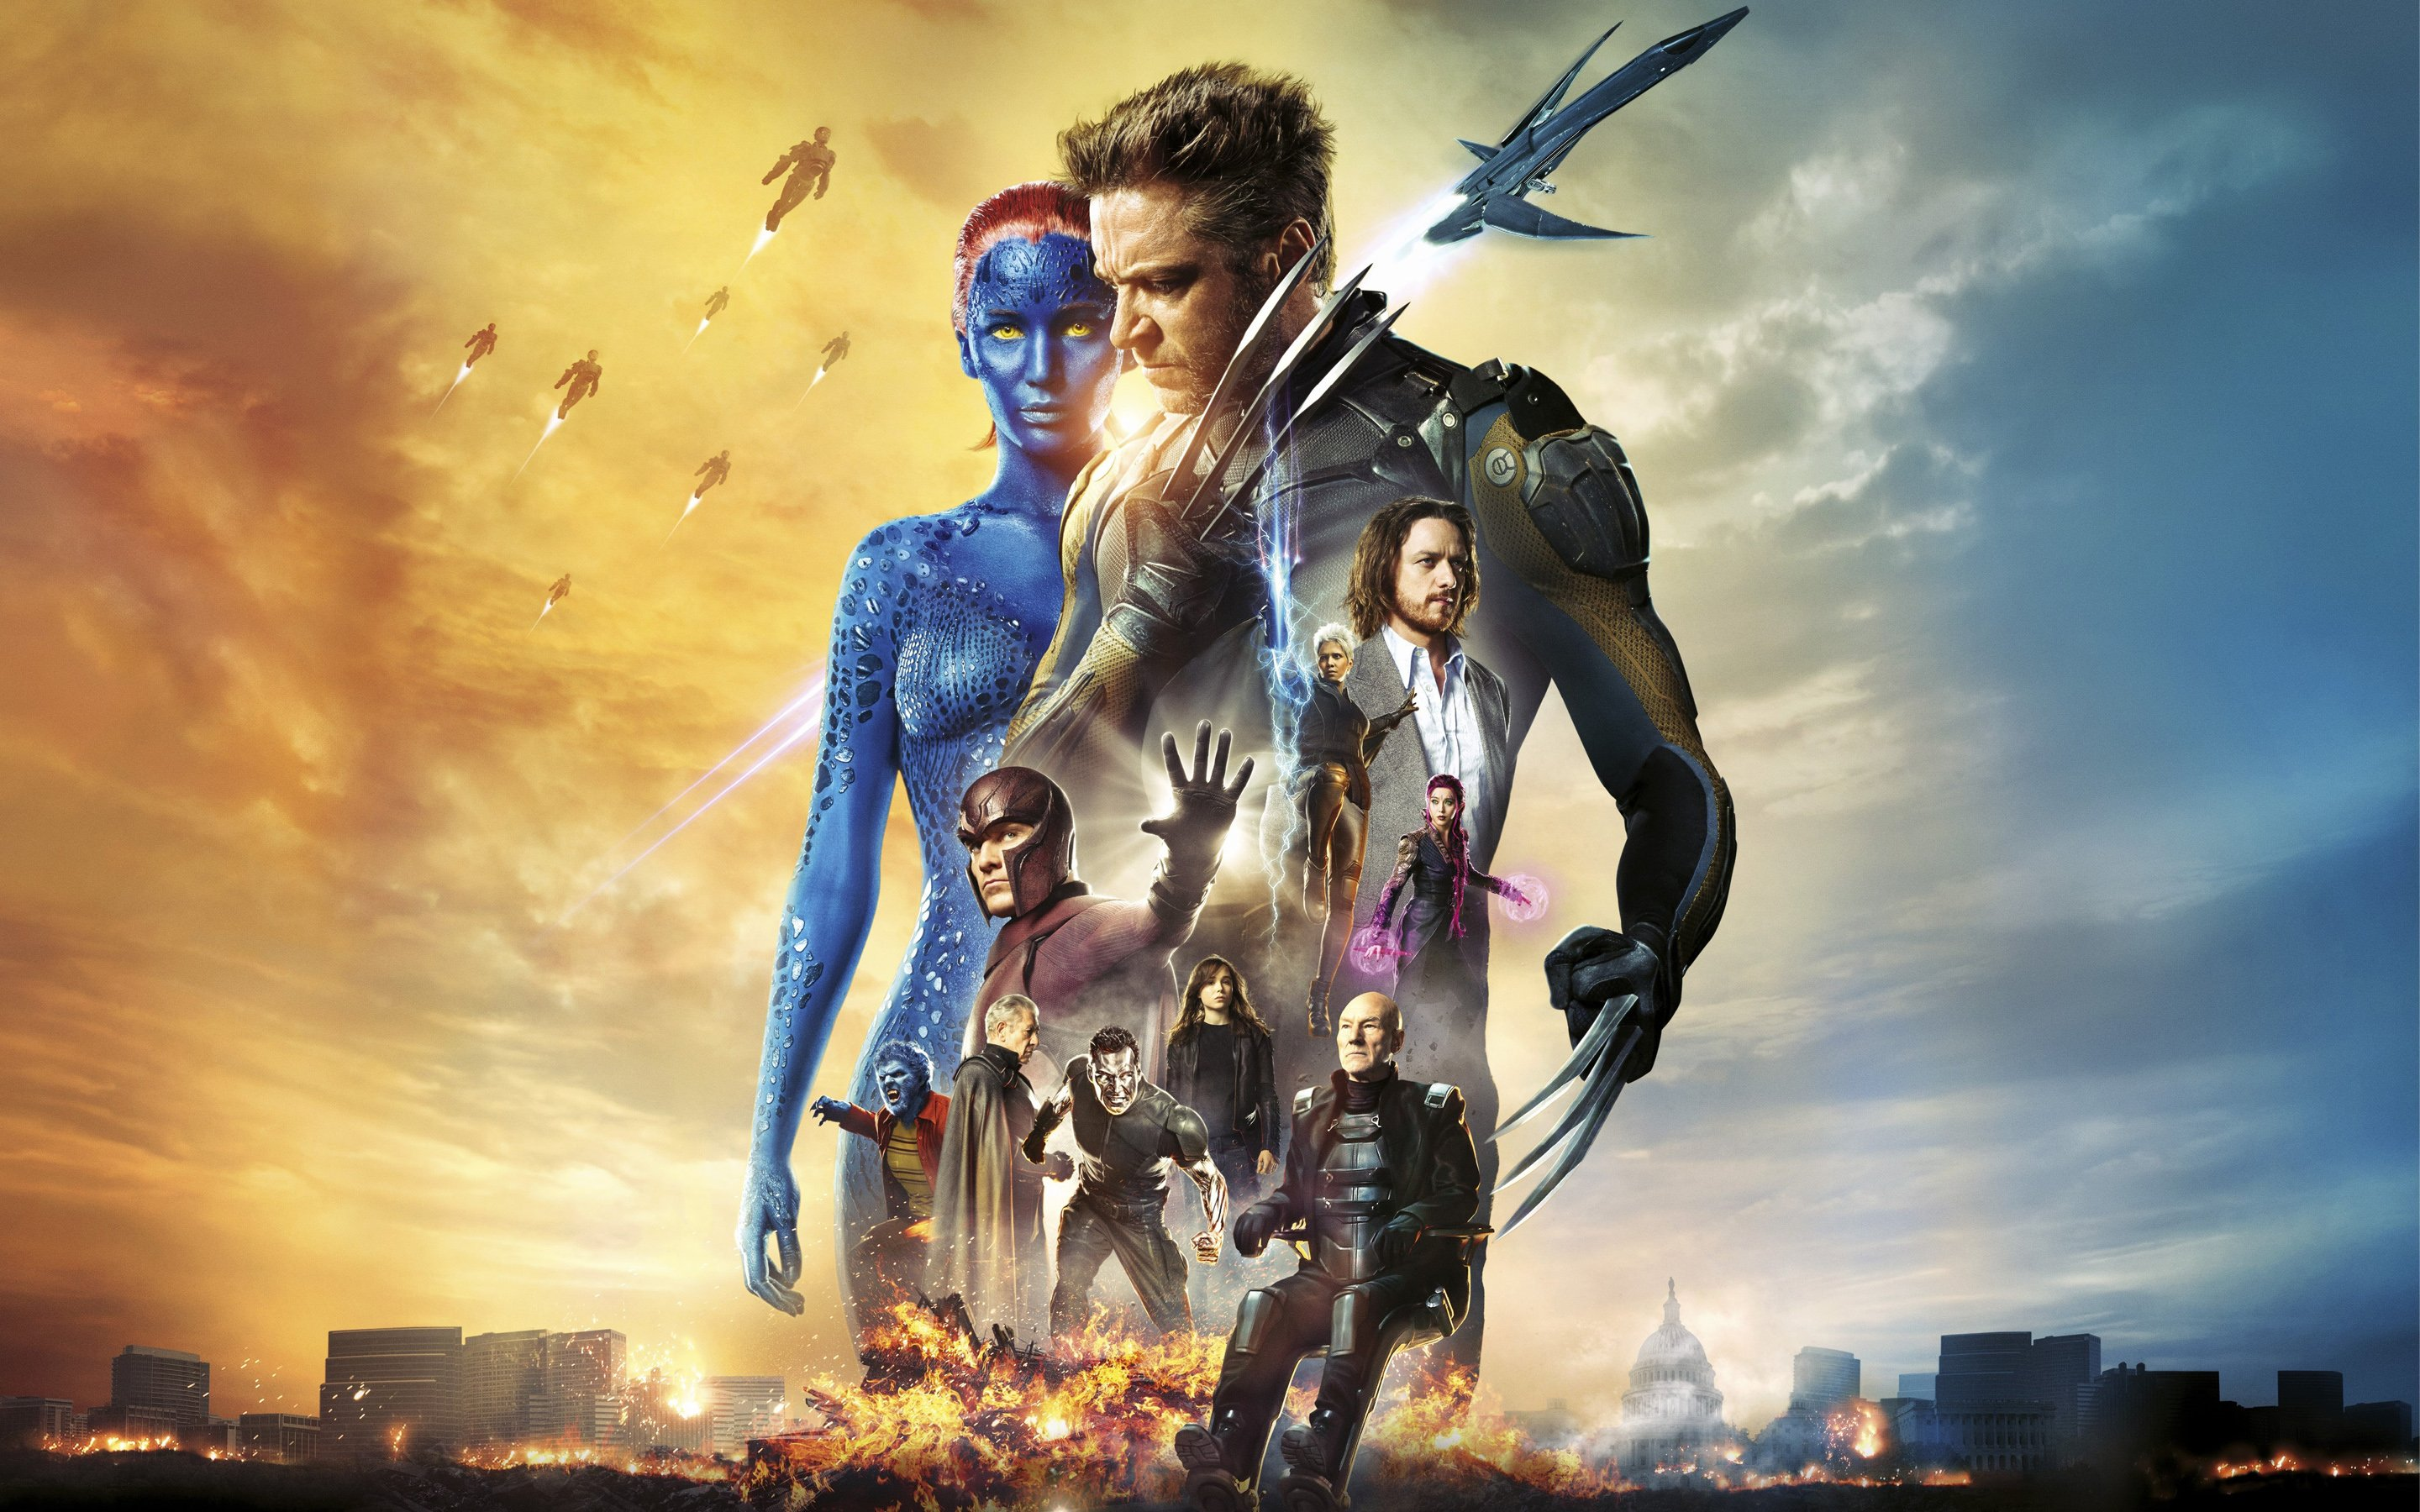 download Men Days of Future Past Movie Wallpapers HD 2880x1800